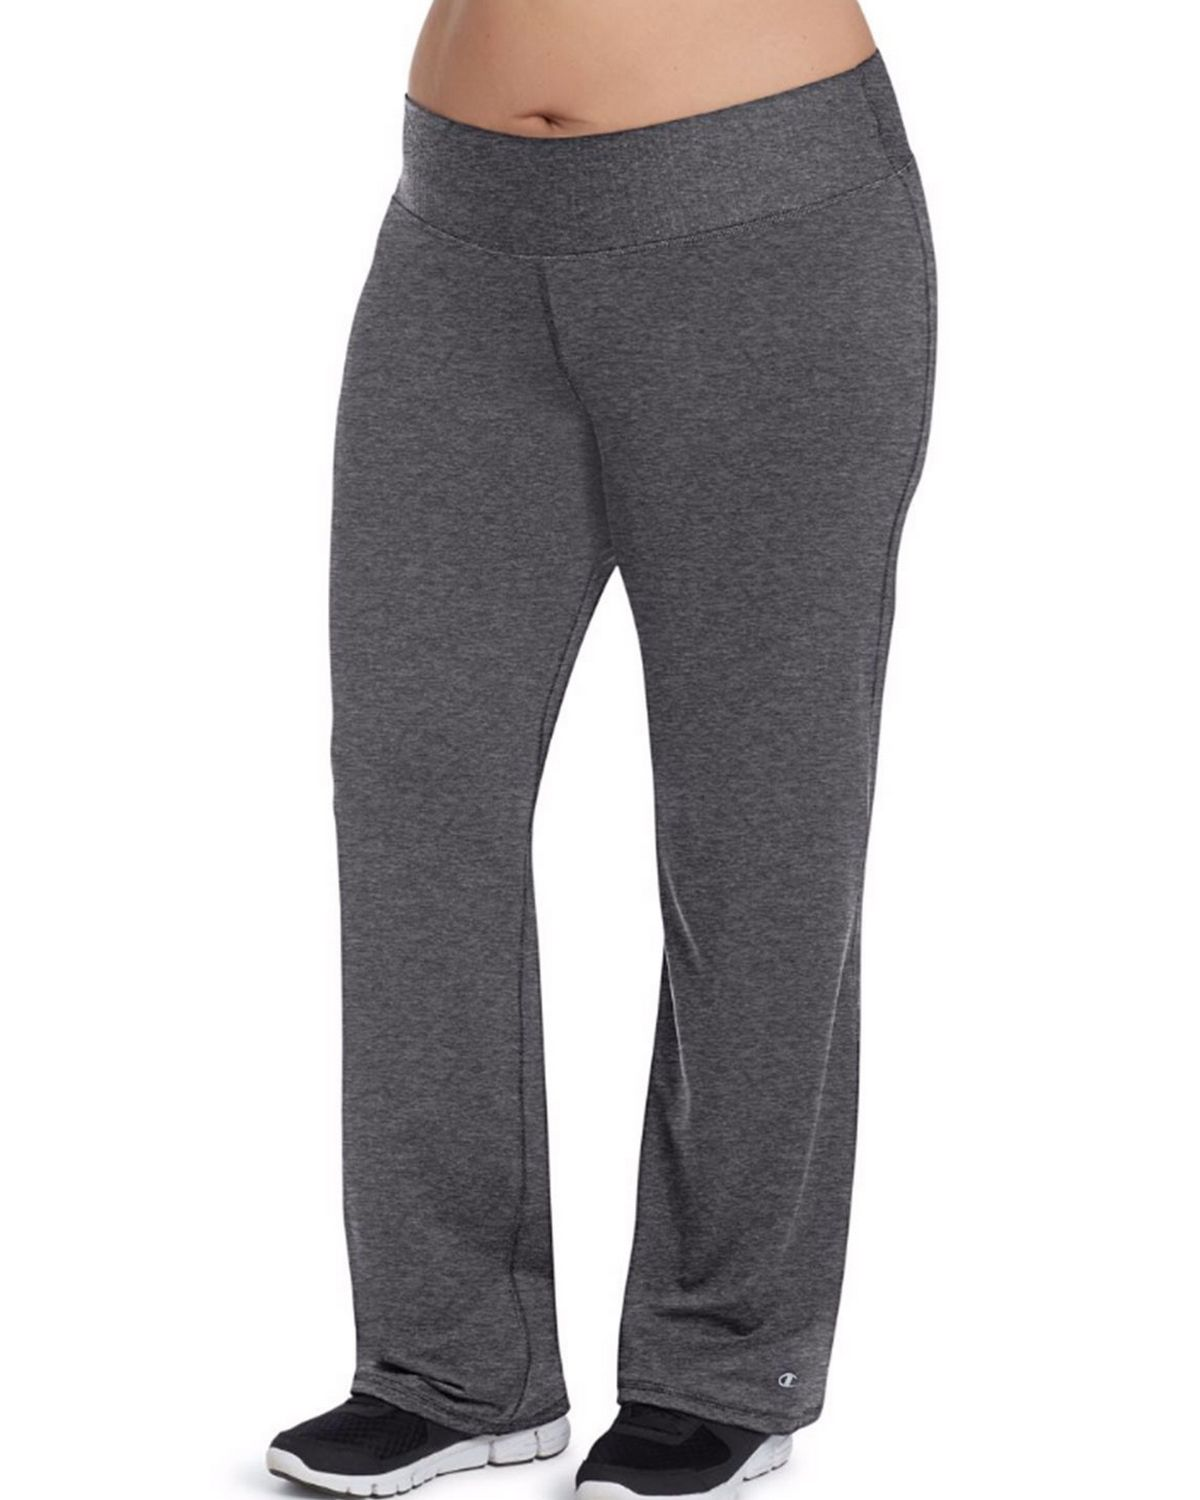 Champion QM0981 Womens Plus Semi-Fit Pants - Granite Heather - XL QM0981